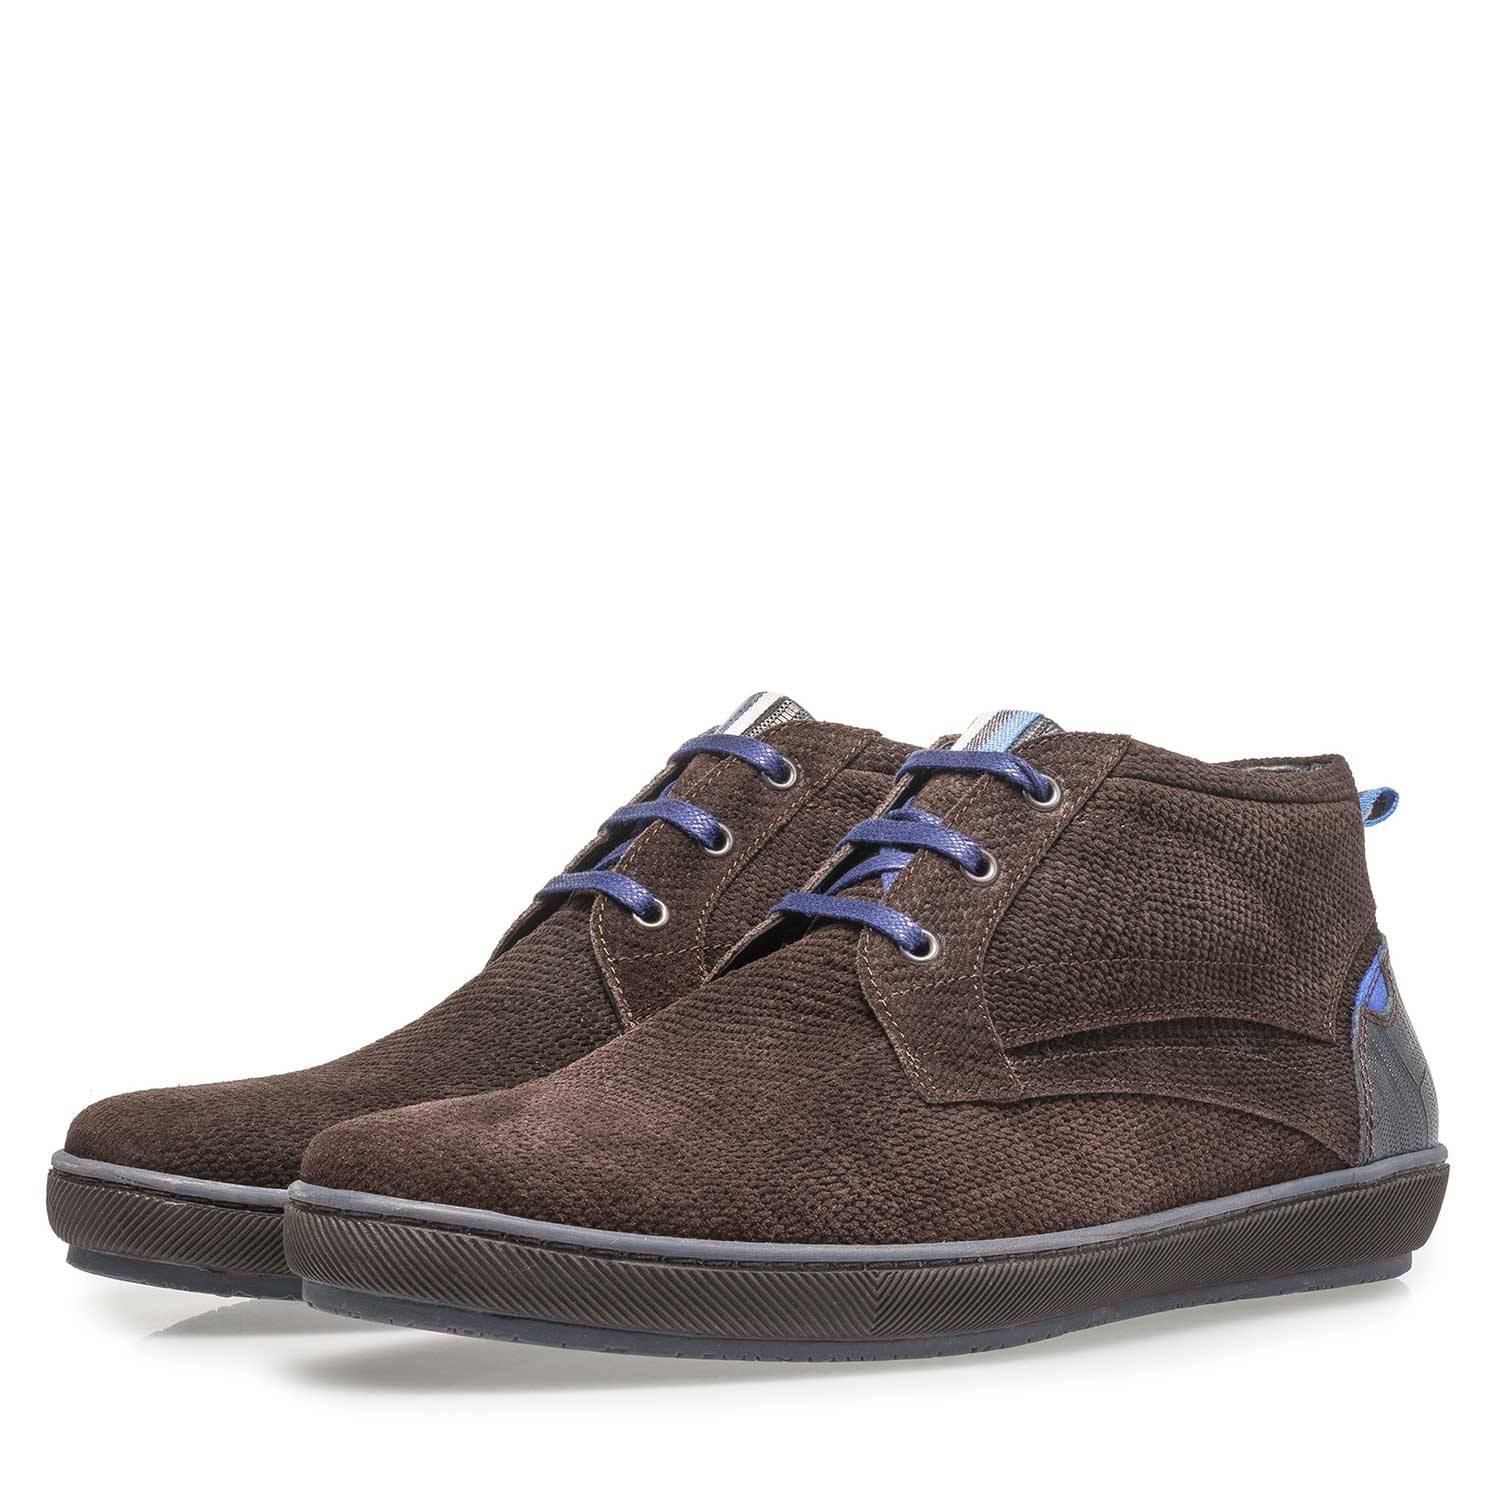 10074/16 - Dark brown printed suede leather lace shoe